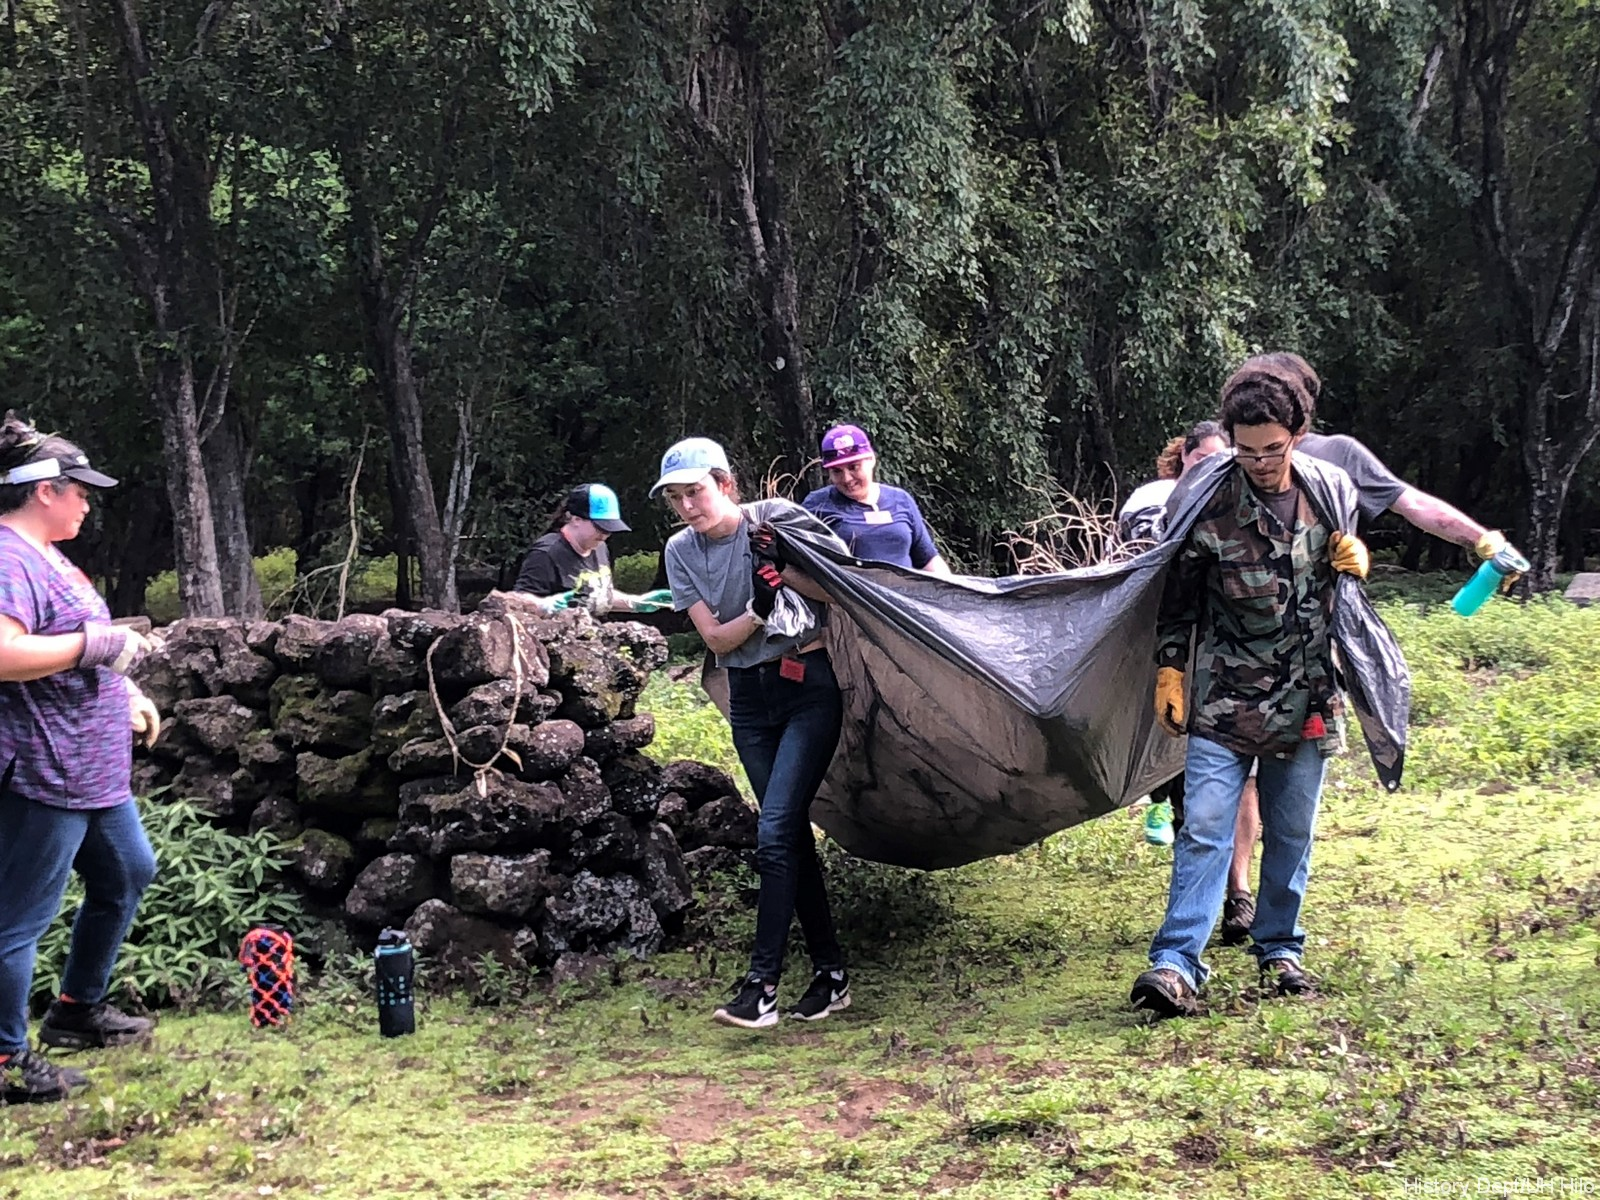 Students haul a large tarp filled with brush they've cleared away.